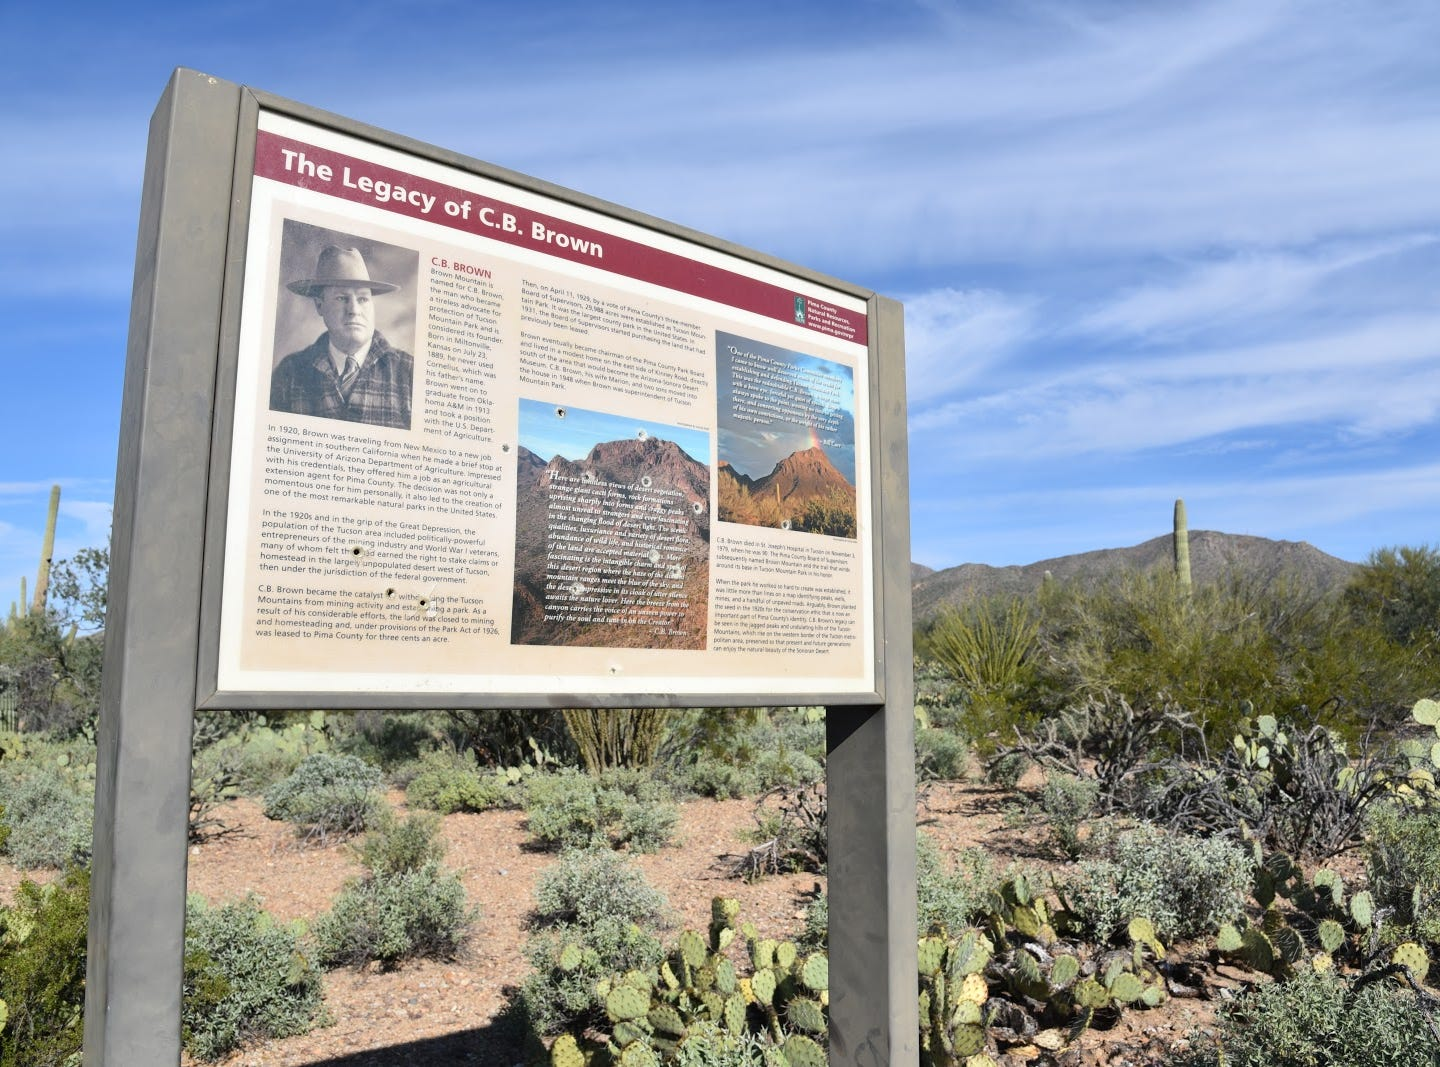 C.B. Brown is considered the founder of Tucson Mountain Park.